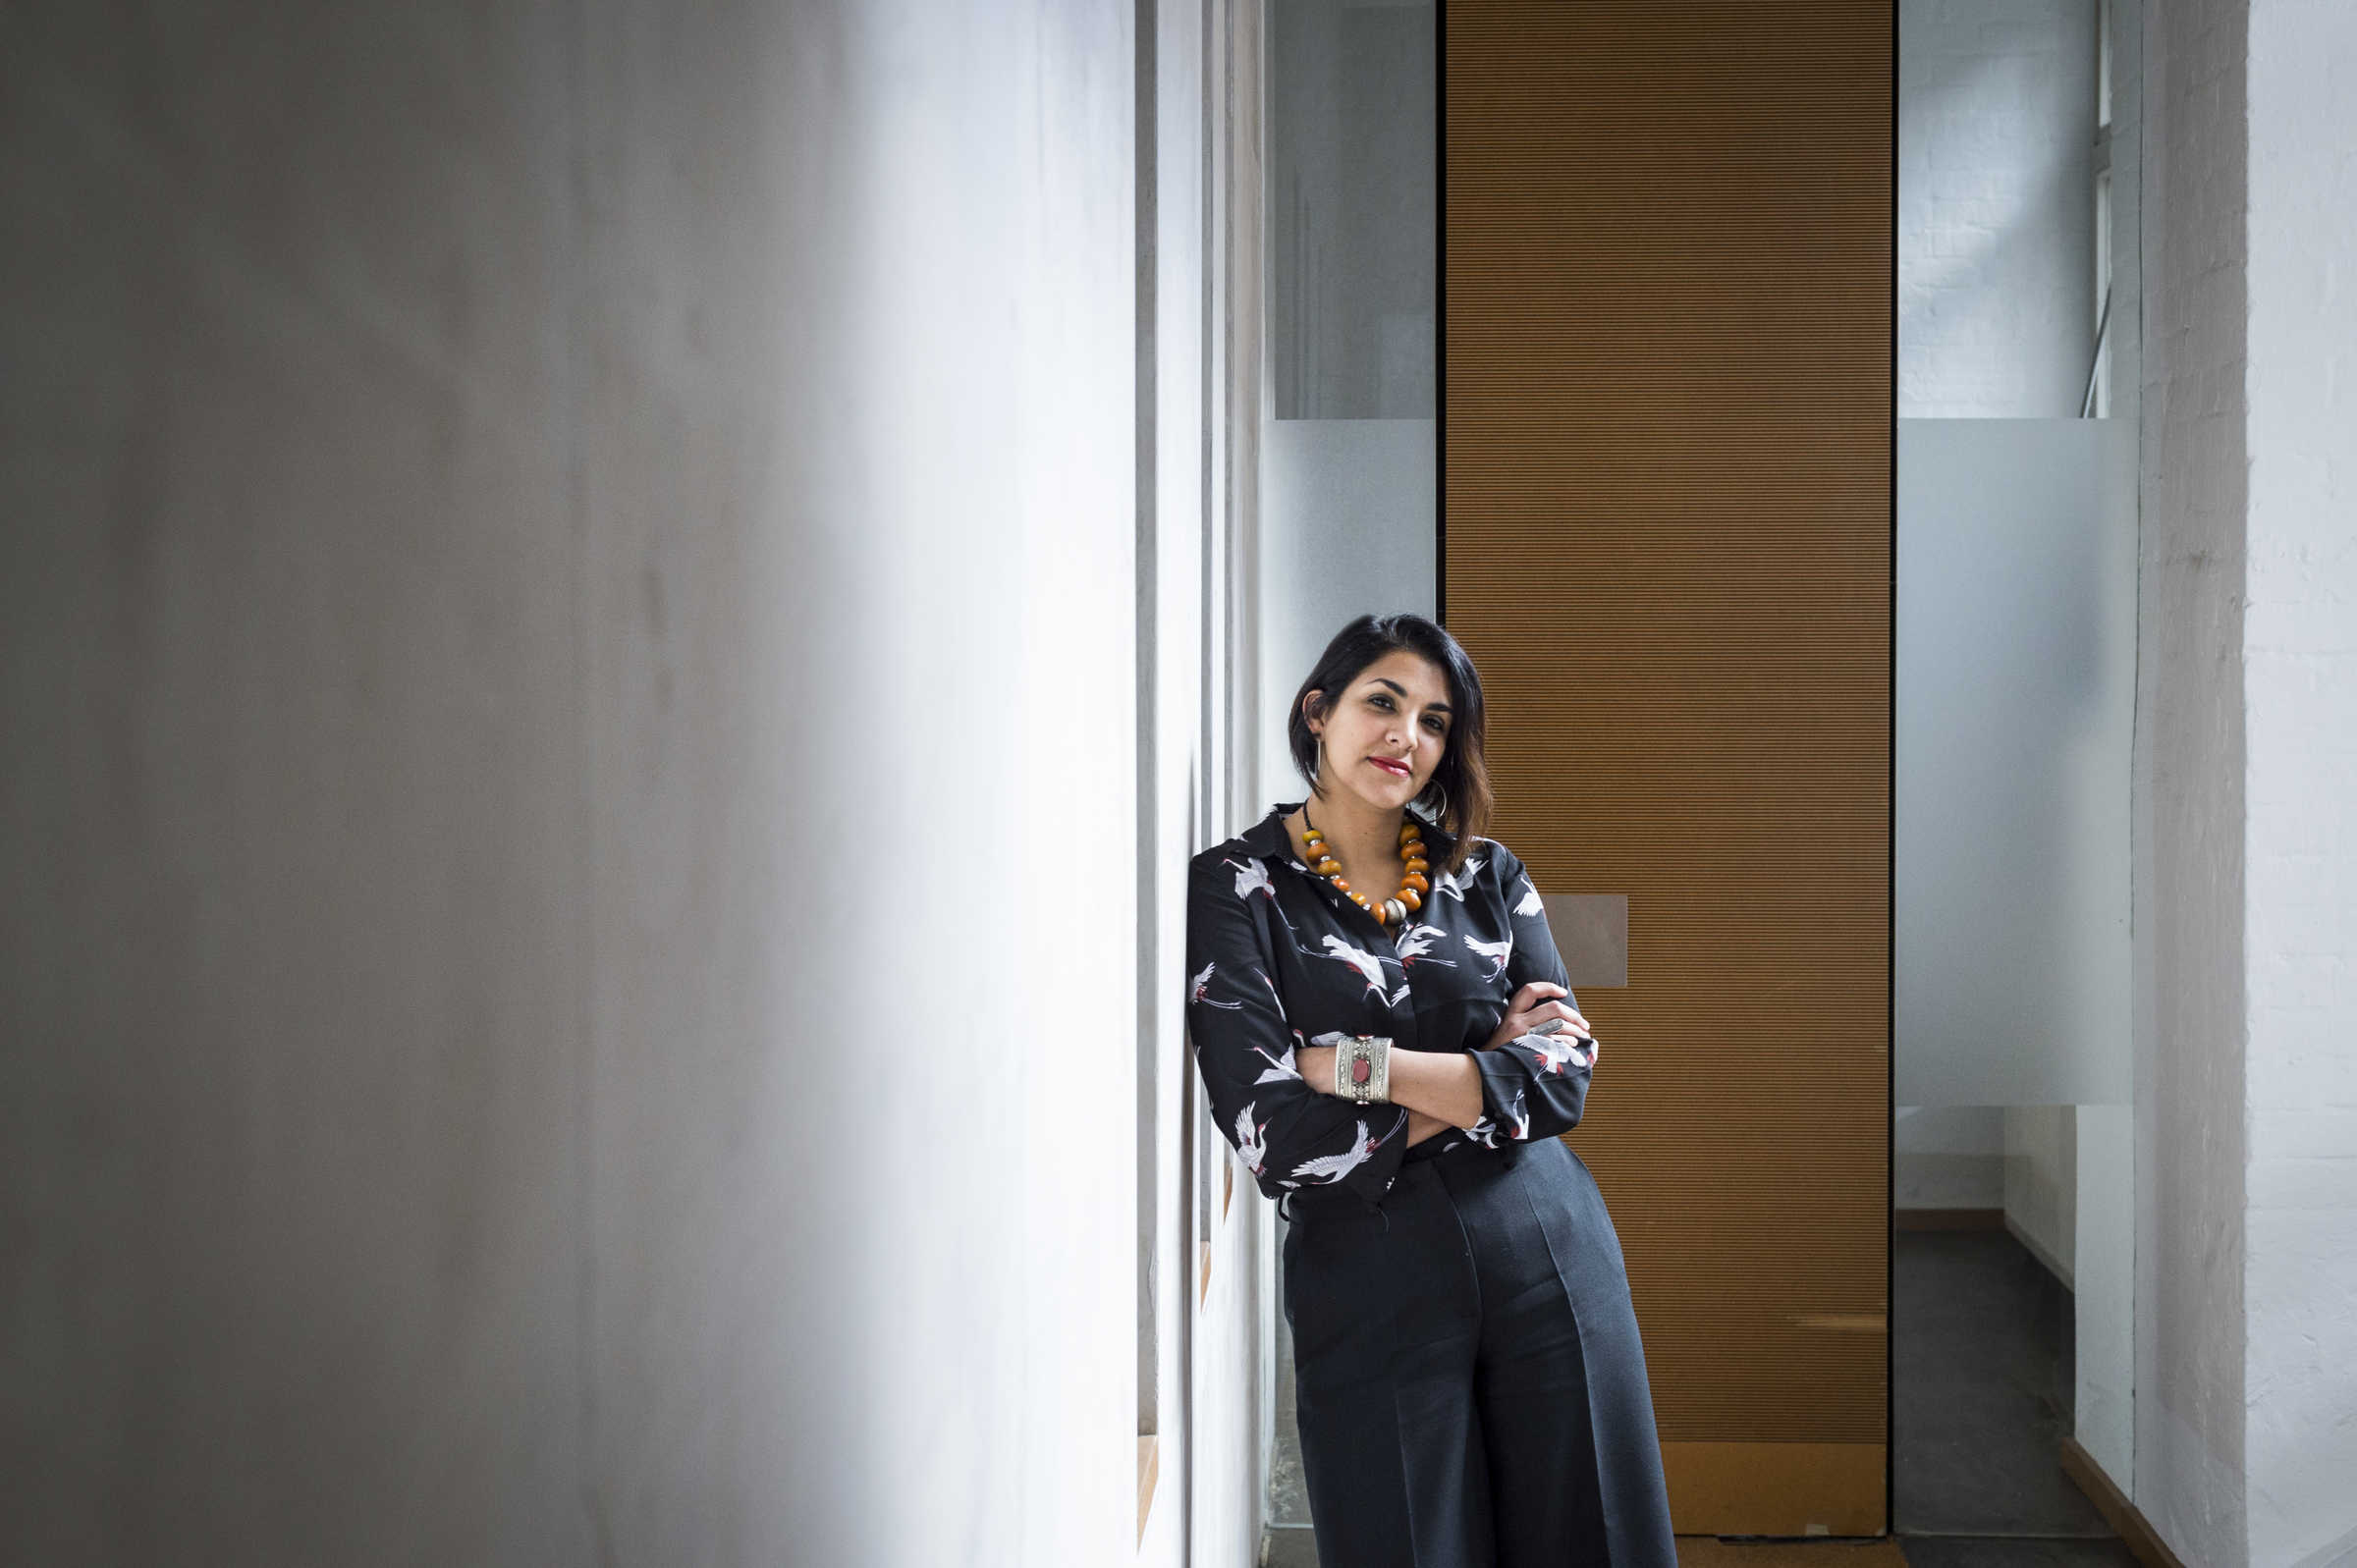 Heba Y. Amin. Photo credits: Sebastian Böttcher.